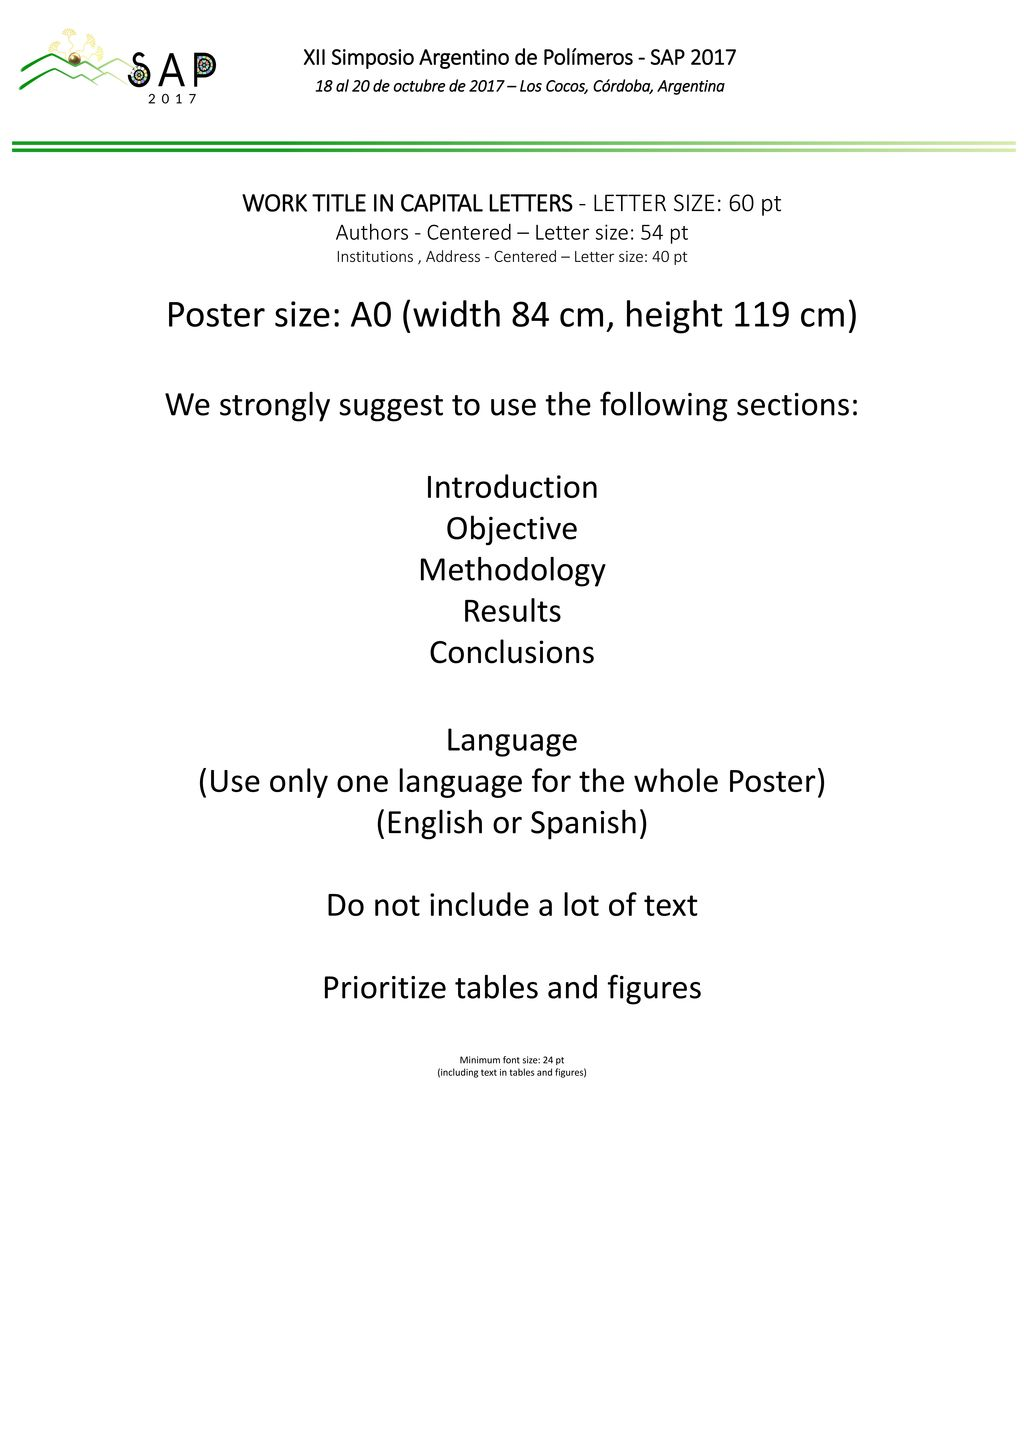 Poster size: A0 (width 84 cm, height 119 cm) - ppt download